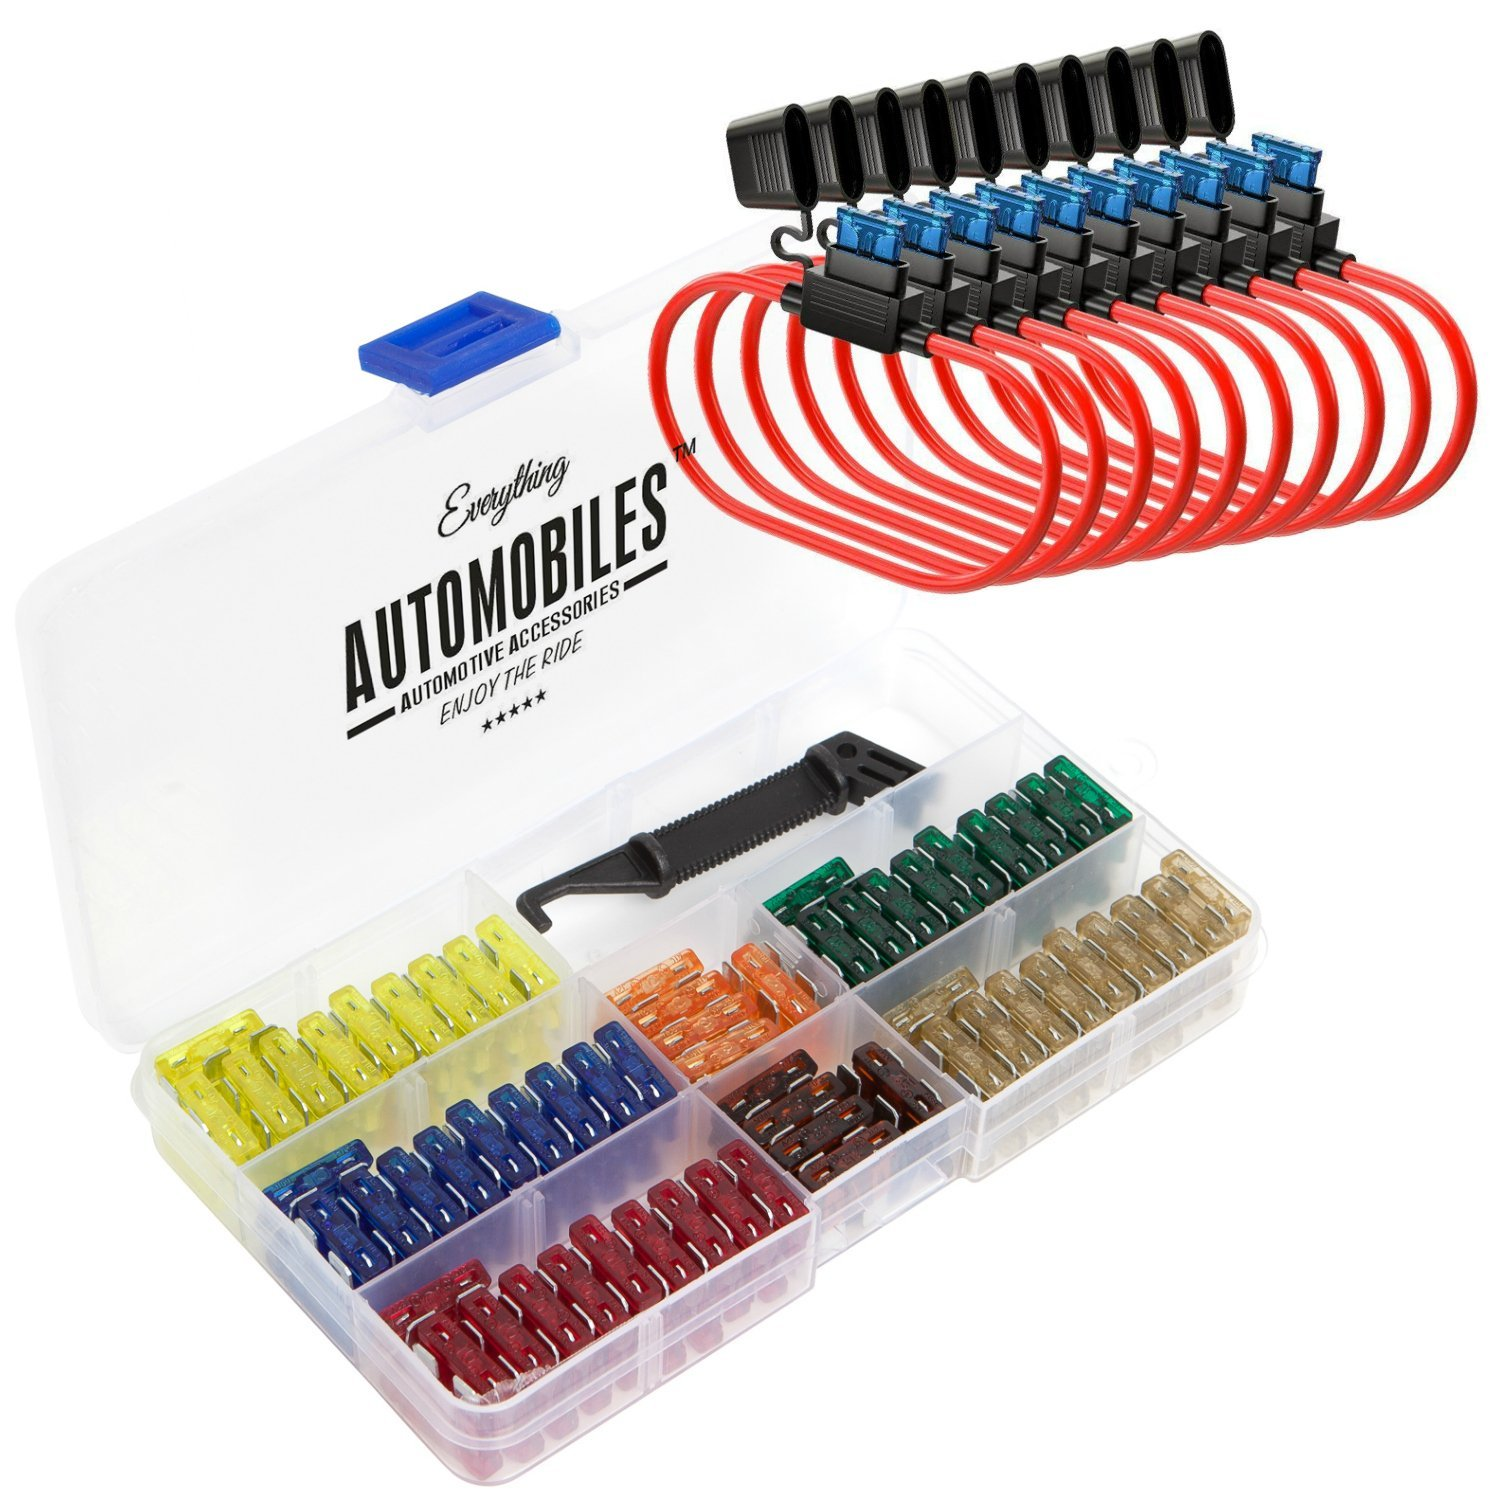 amazon com: everything automobiles, 120 assorted fuses with 10 inline fuse  holders -